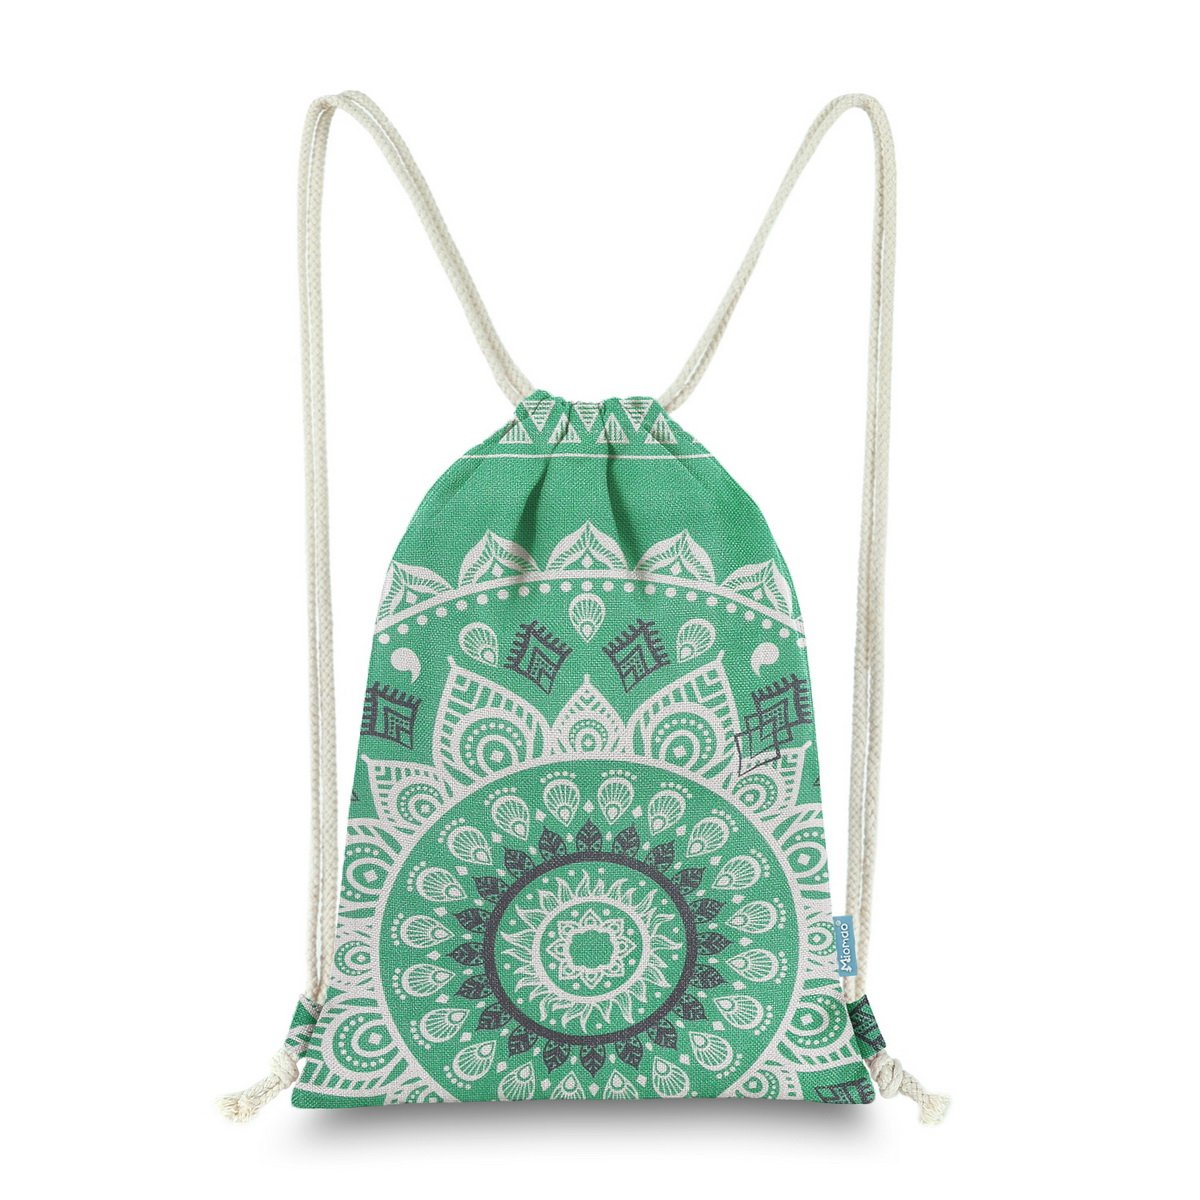 Miomao Drawstring Backpack Canvas Gym Sackpack, Geometric Mandala Style Gymsack with Zipper Pockets, Unisex Casual Bag Yoga Daypack Outdoor Rucksack, 13'' X 18'', Emerald